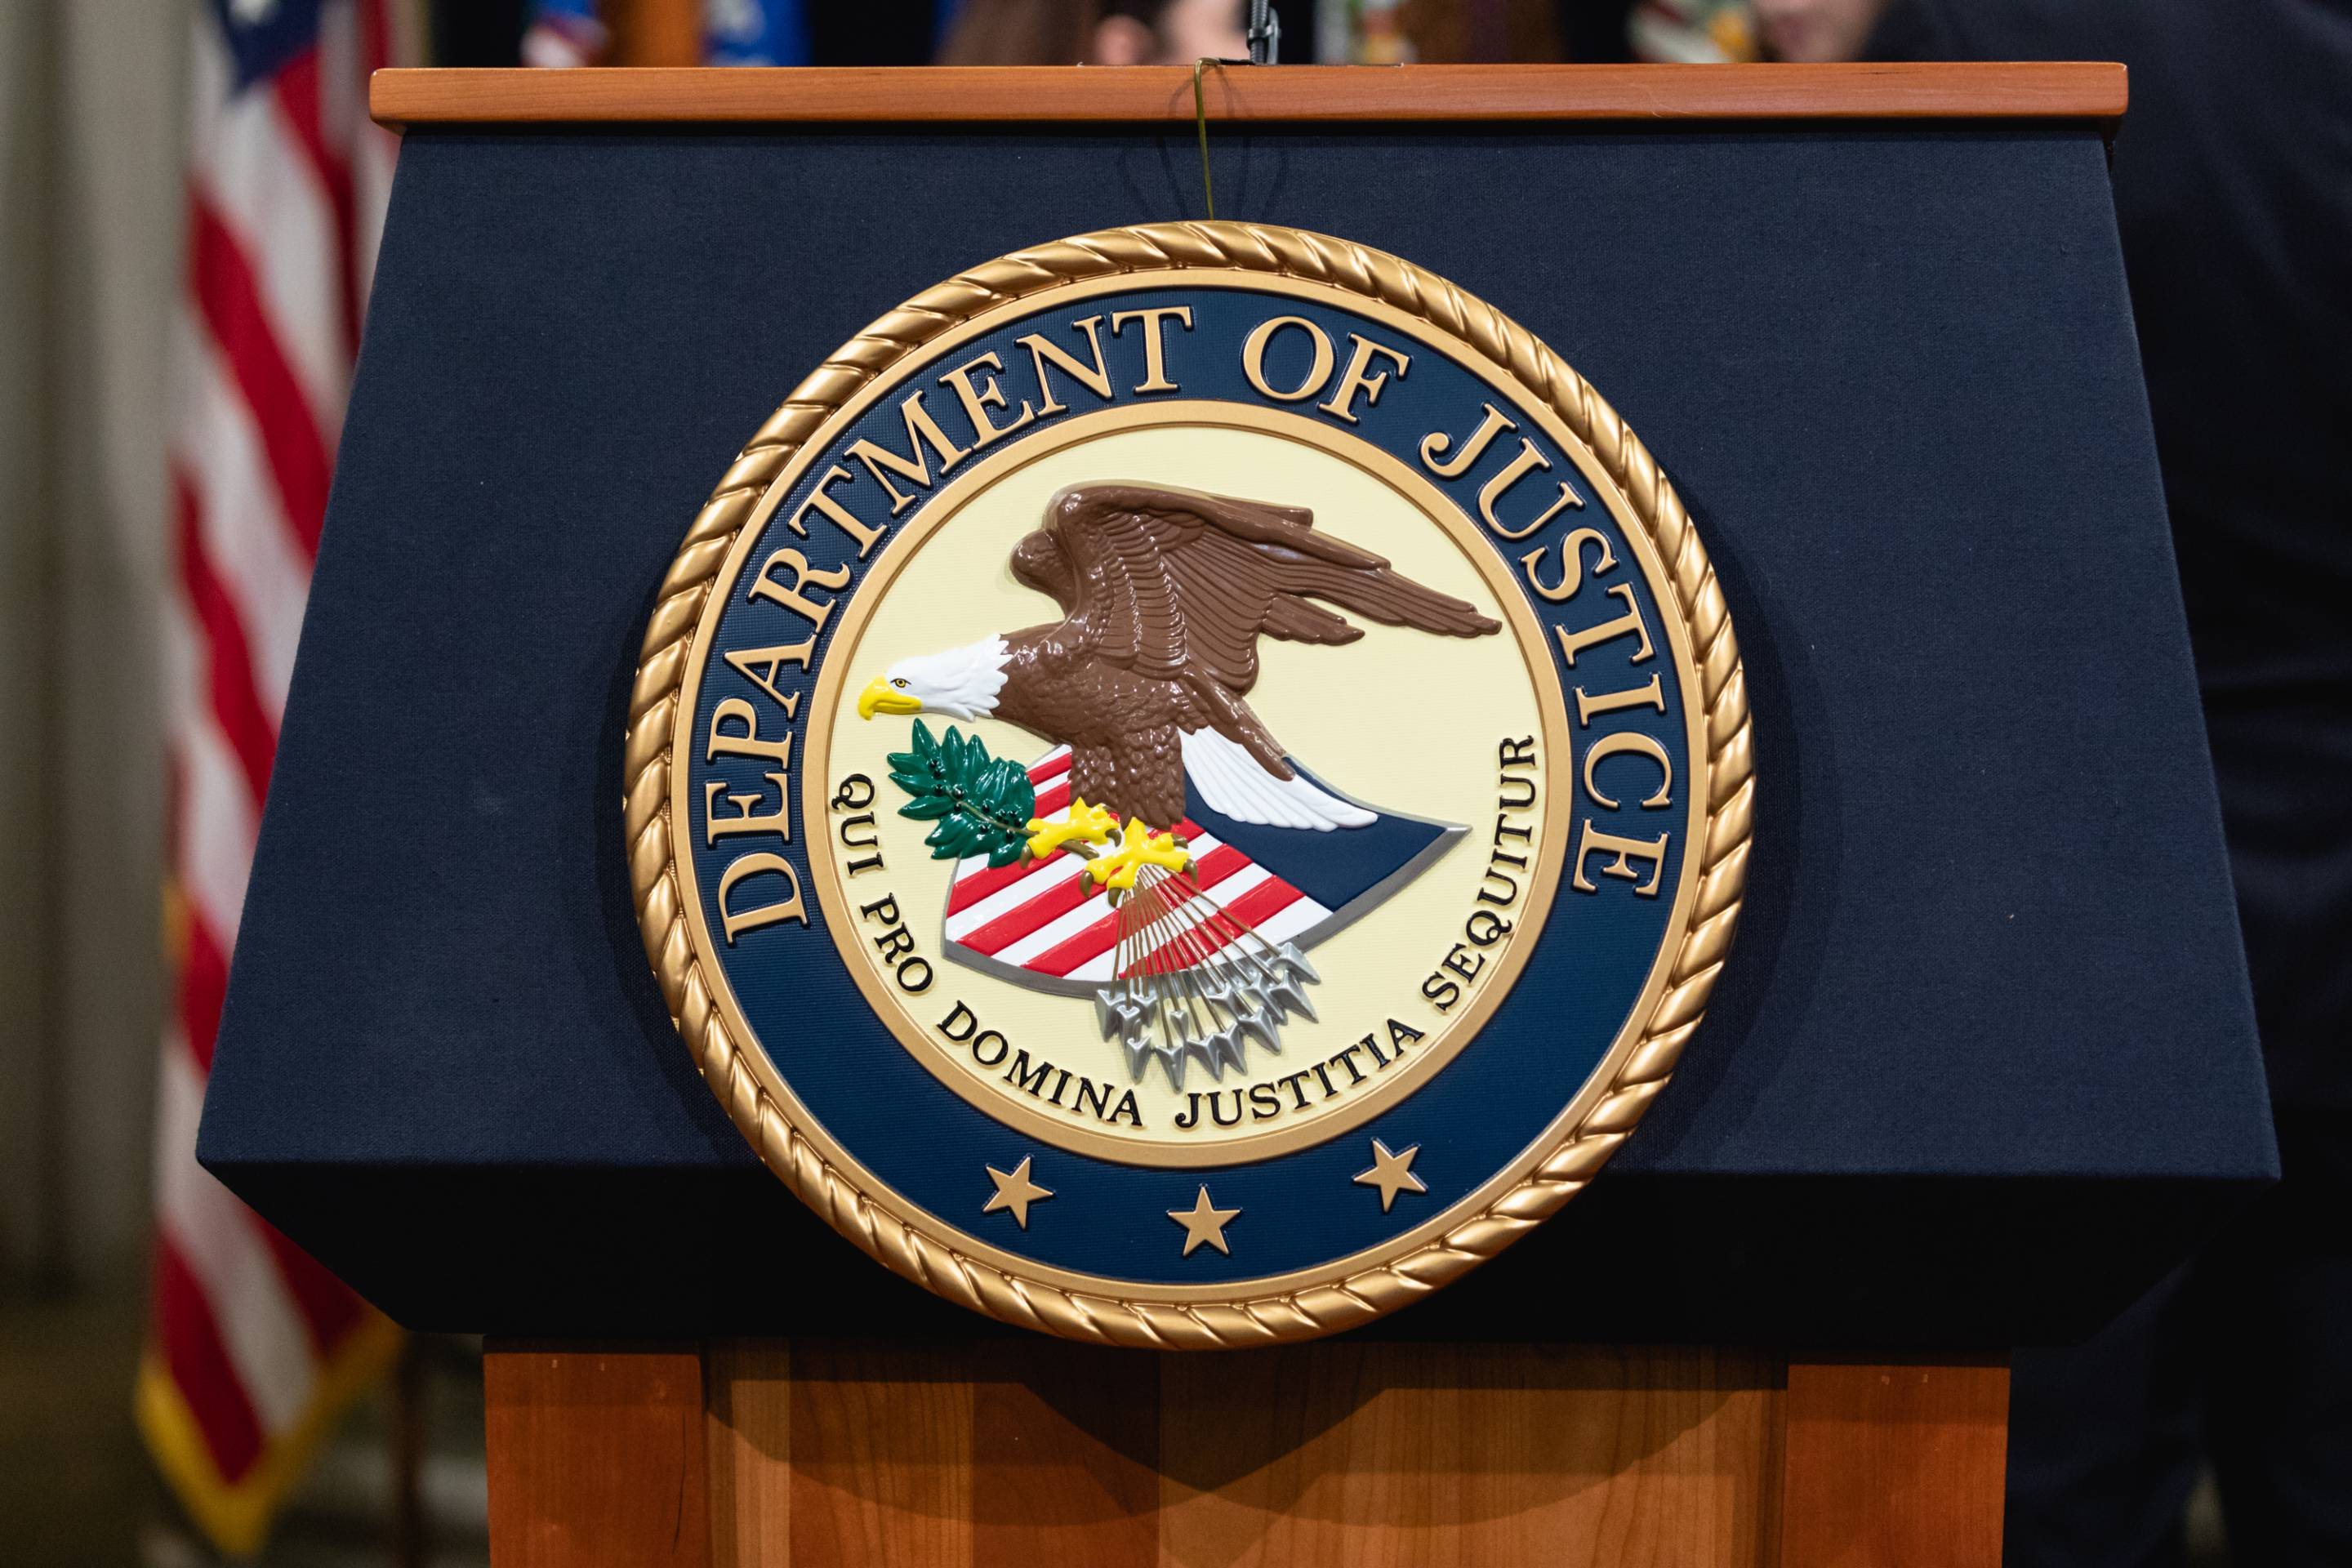 Attorney General Jeff Sessions Announces Civil Rights Initiative On The Fair Housing Act 50th Anniversary